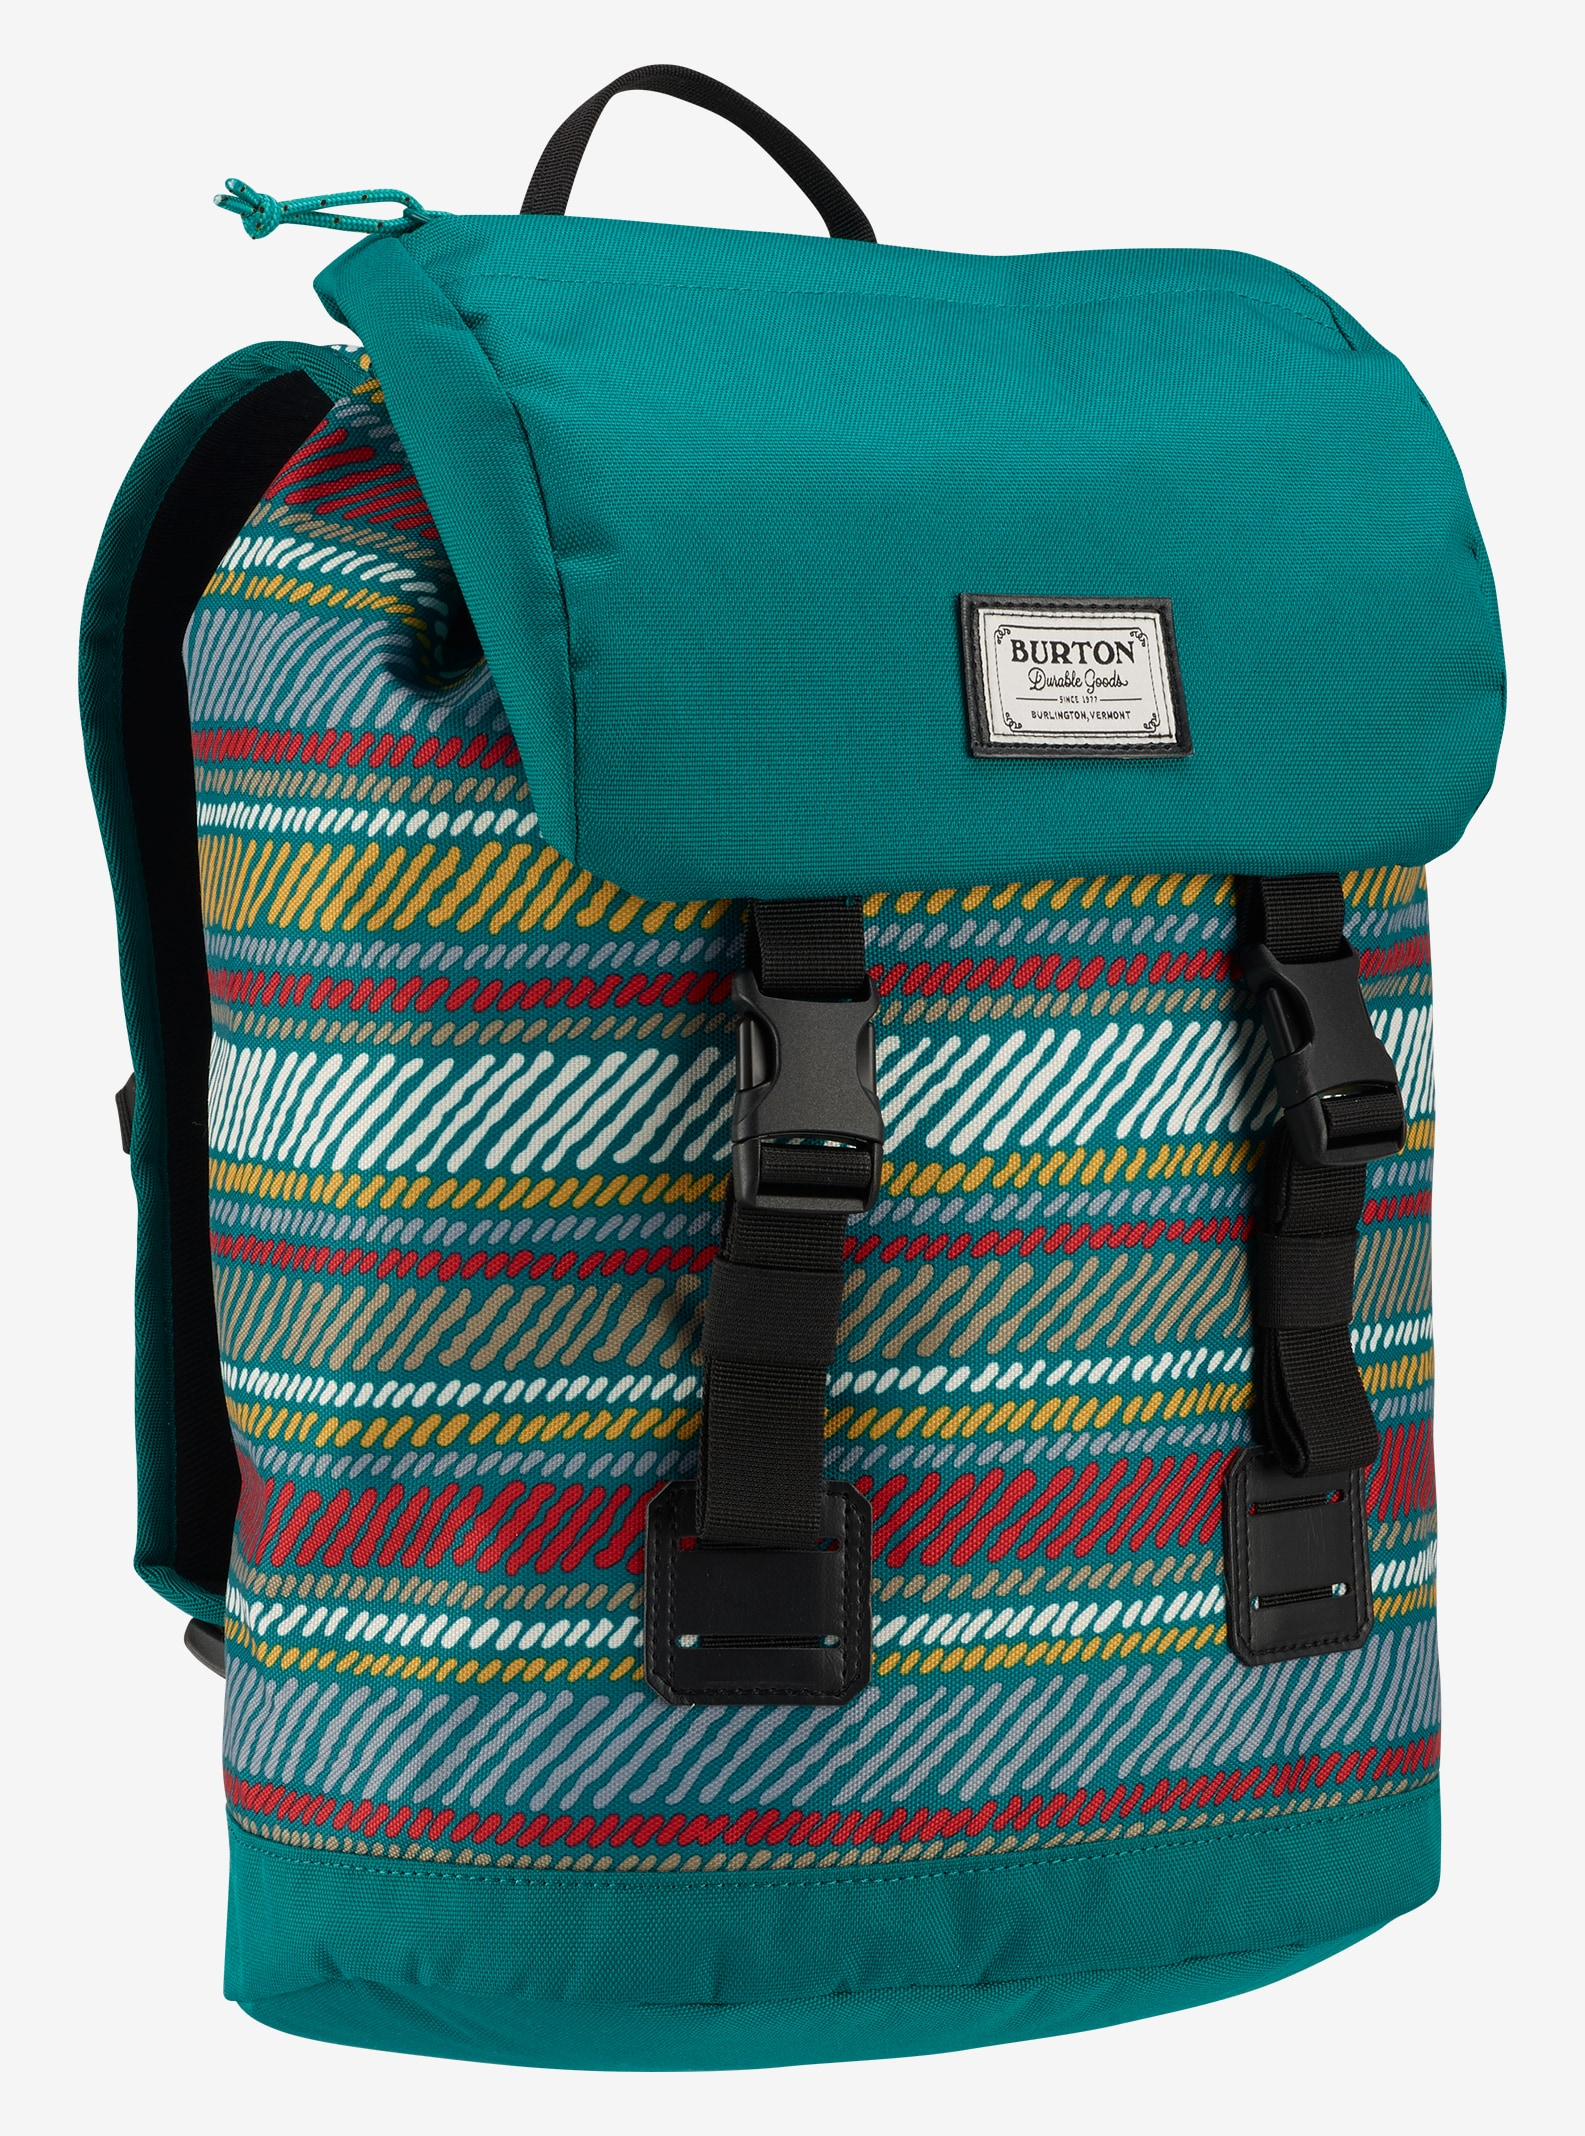 Burton Kids' Tinder Backpack shown in Paint Stripe Print